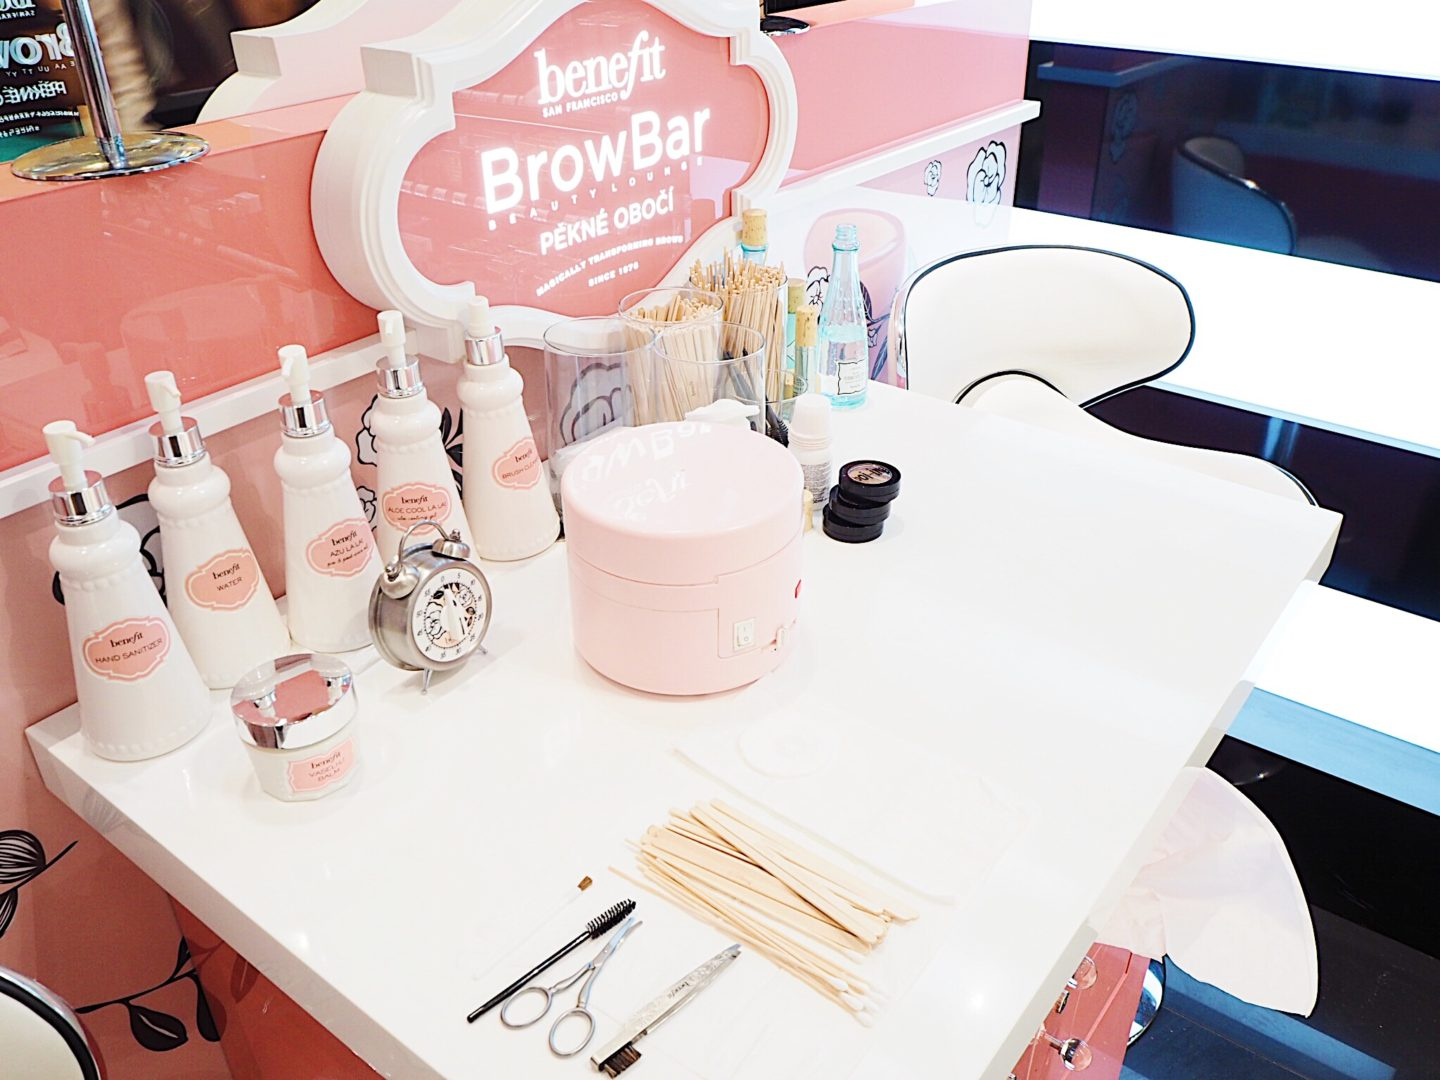 Benefit BrowBar